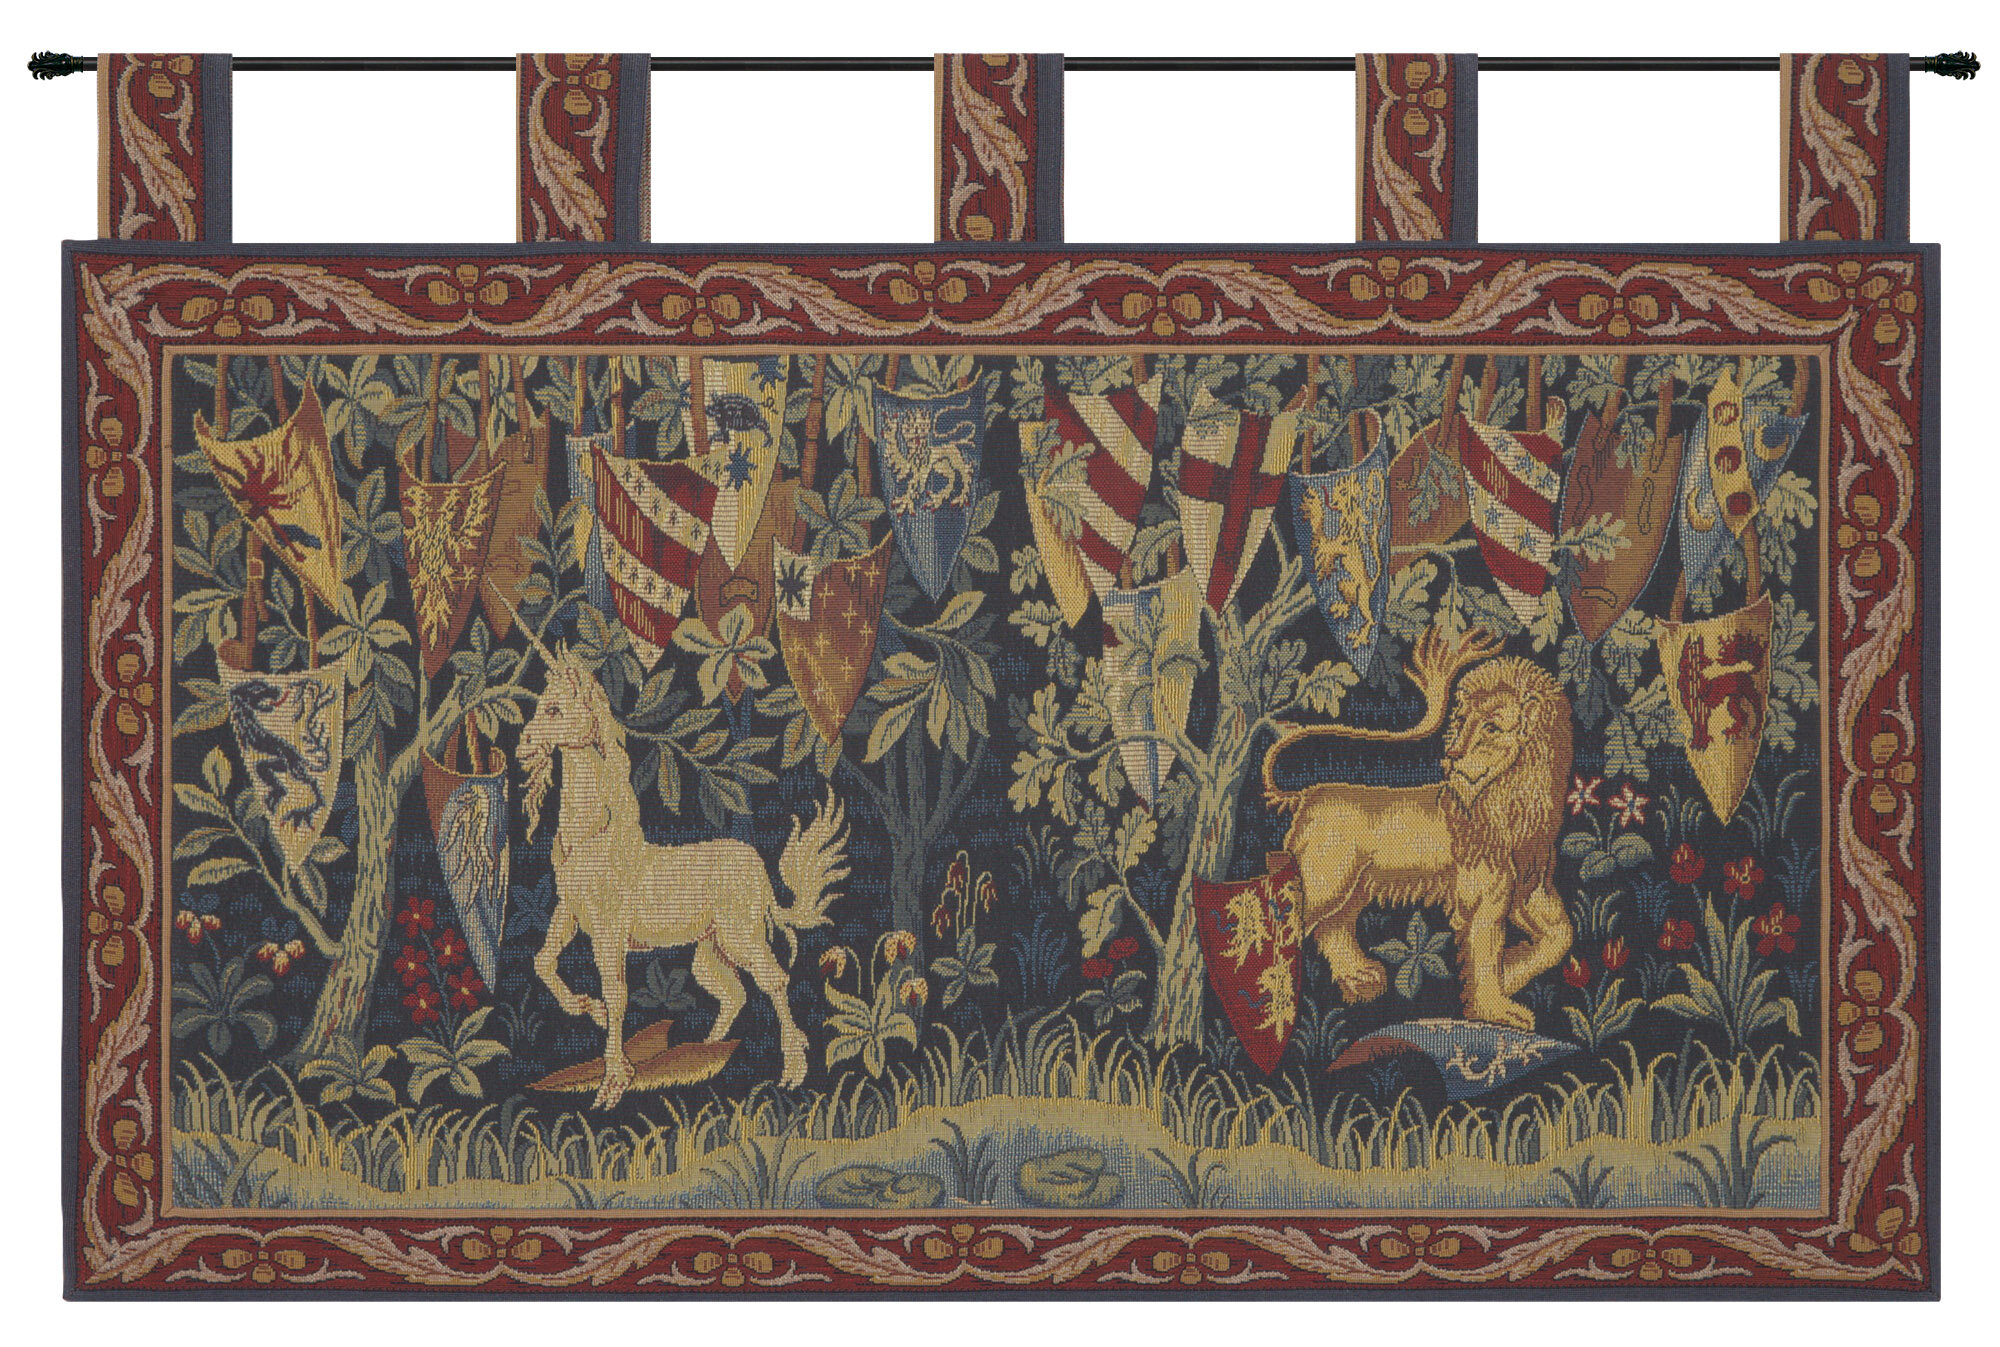 Blended Fabric Lion Et Licorne Heraldiques Tapestry Within Most Up To Date Lion I European Tapestries (View 5 of 20)